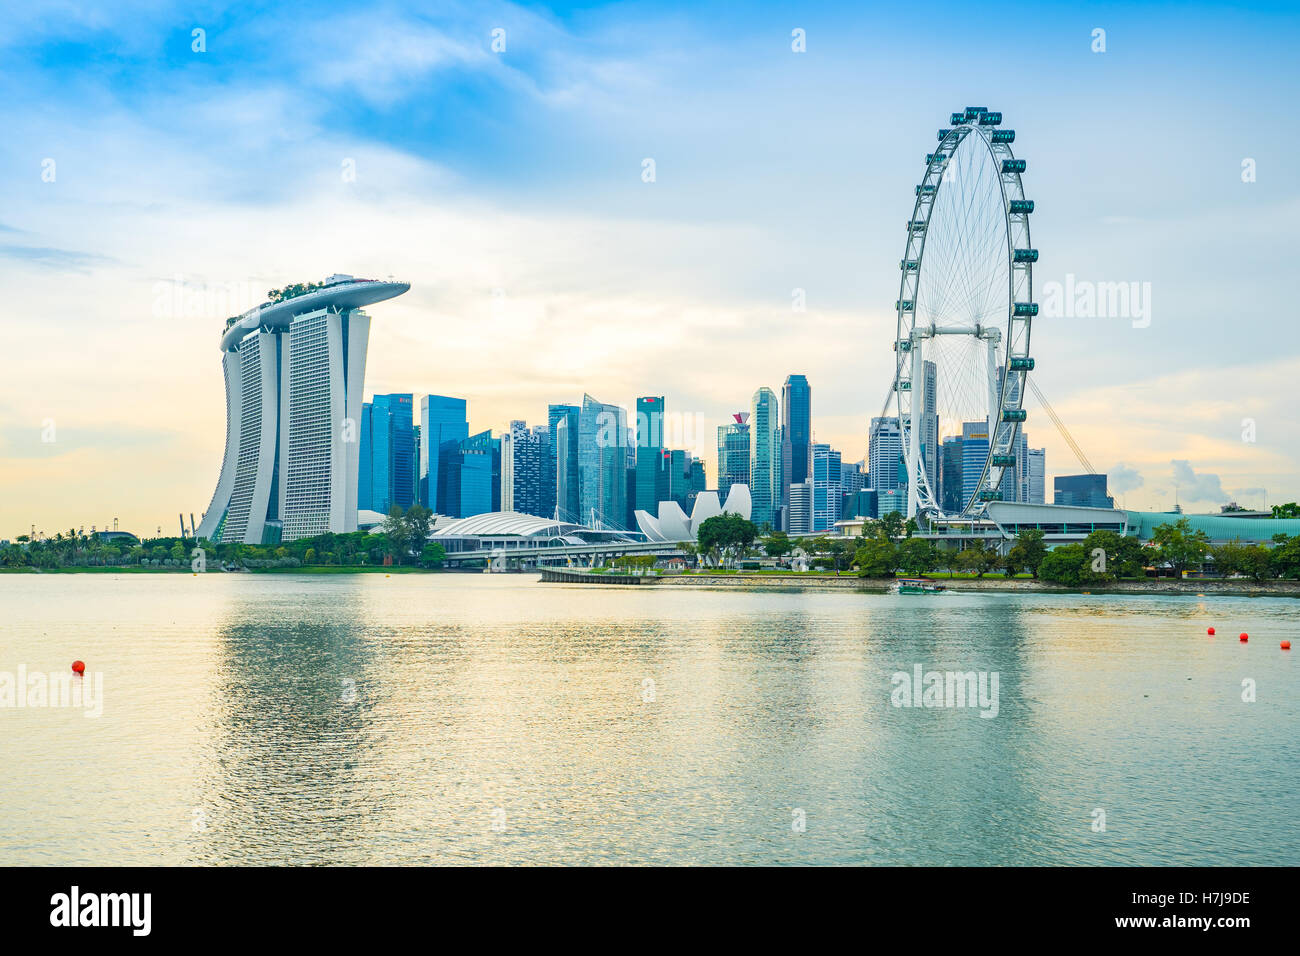 Singapore city skyline and view of Marina Bay at sunset in Singapore city. - Stock Image